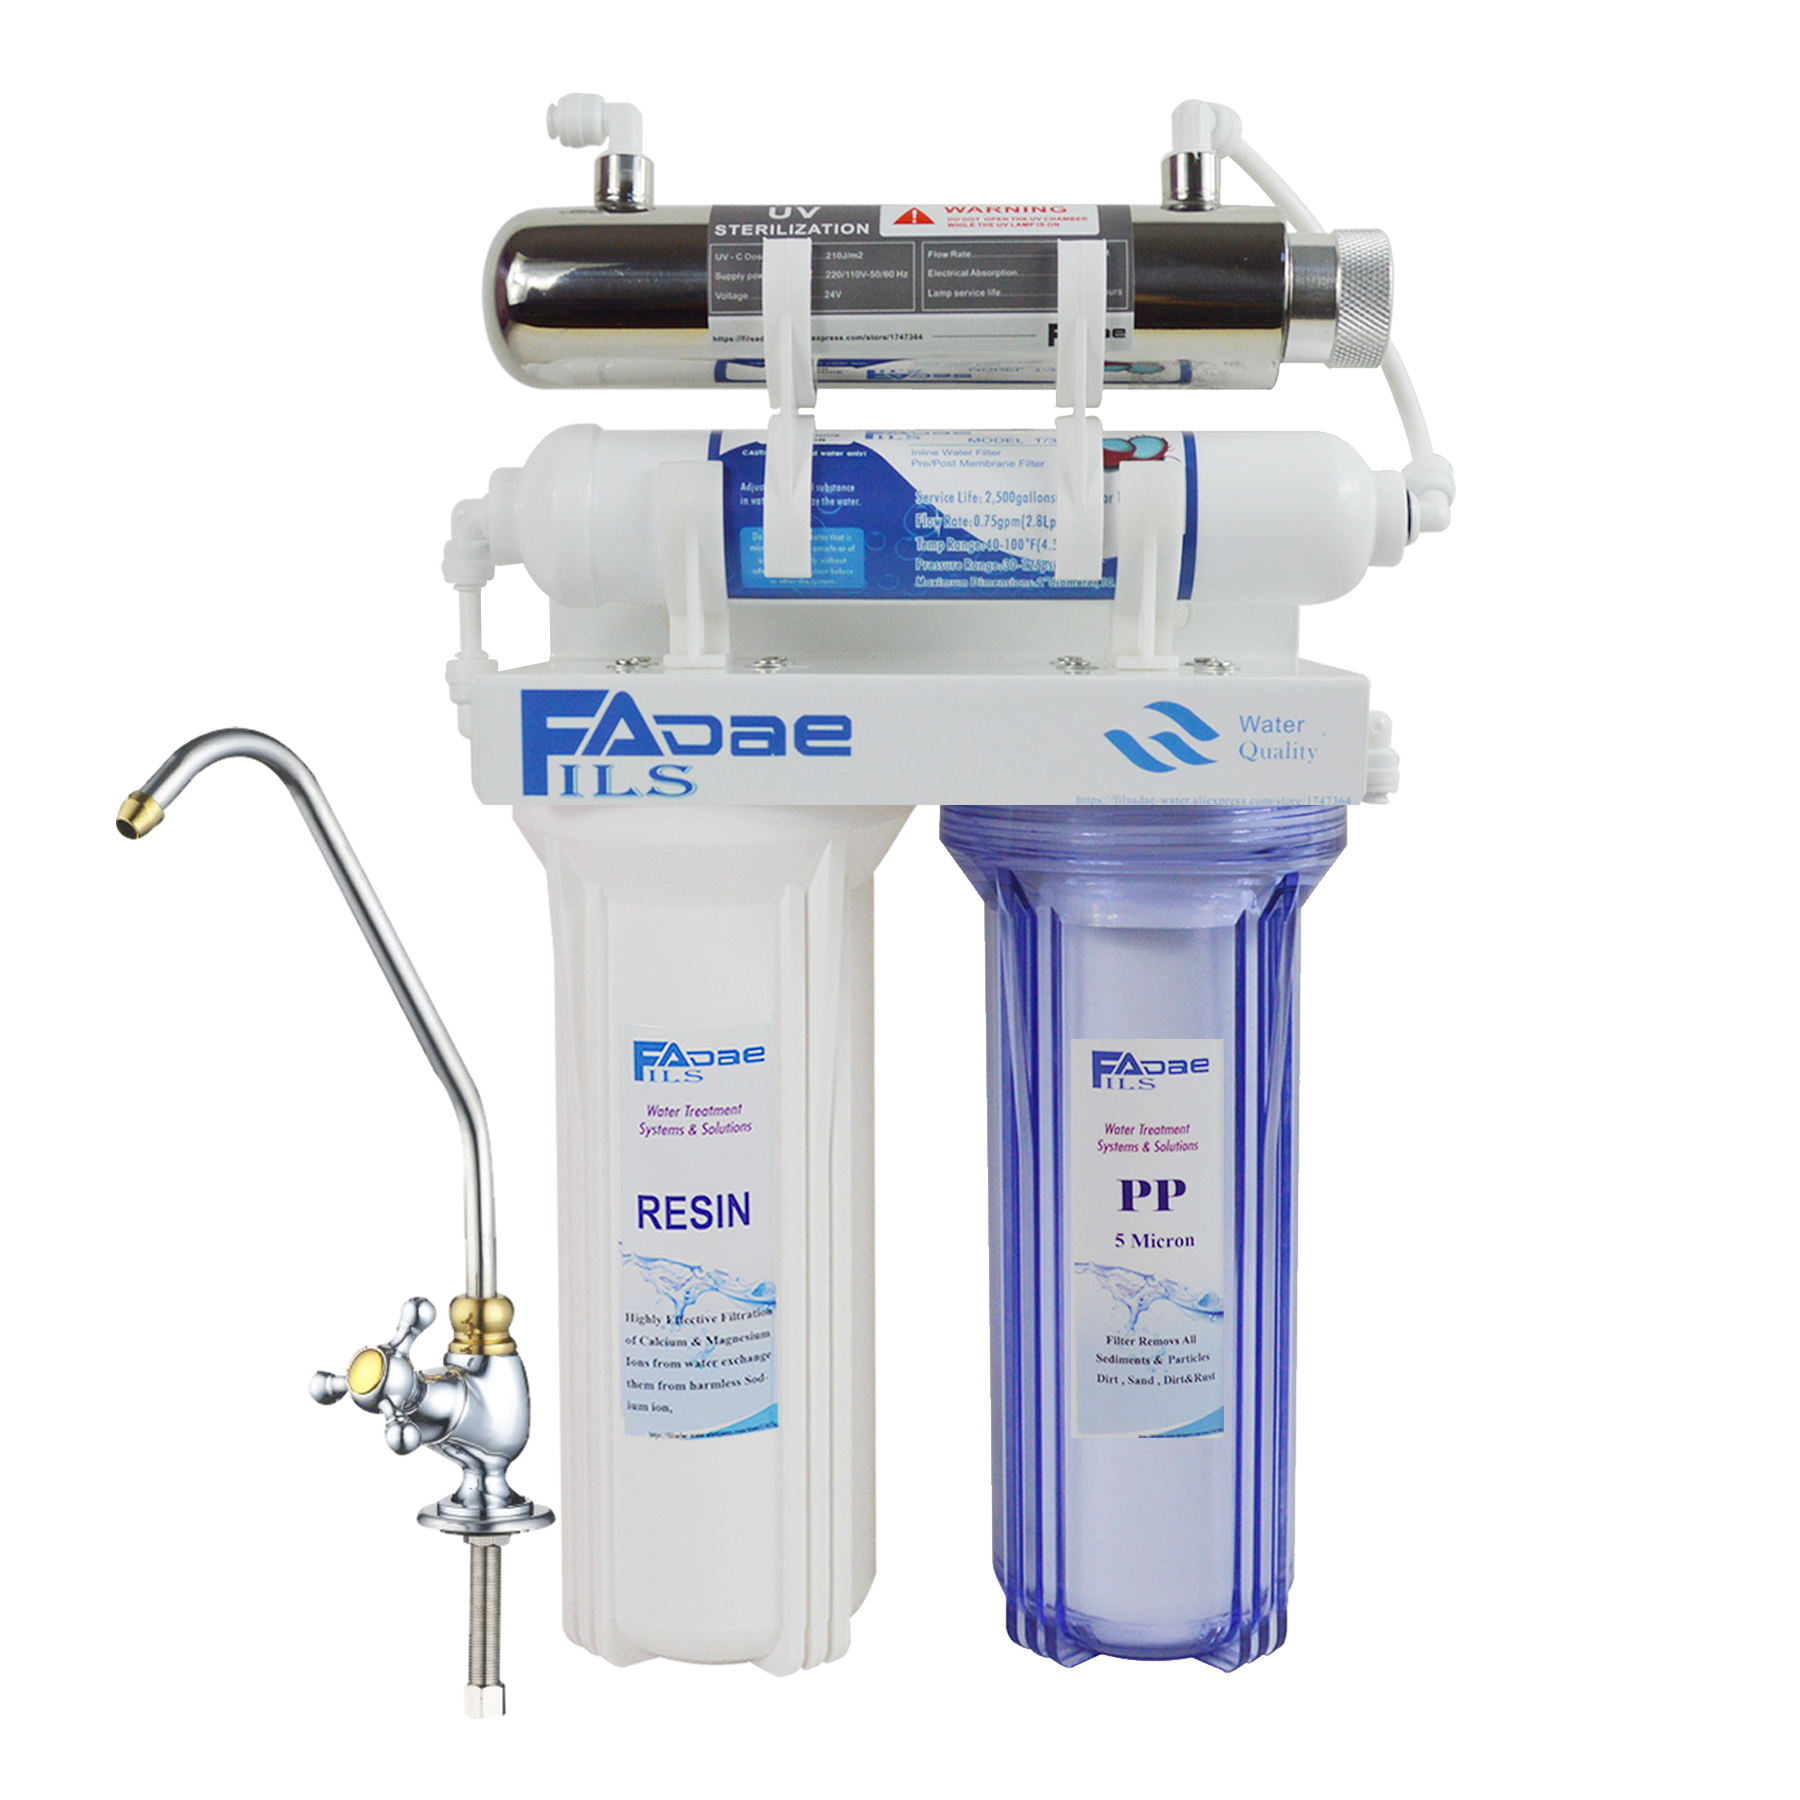 High Quality! 4-Stage Undersink Softener Drinking Water Filtration System With Ultraviolet Sterilizer -Kitchen Use